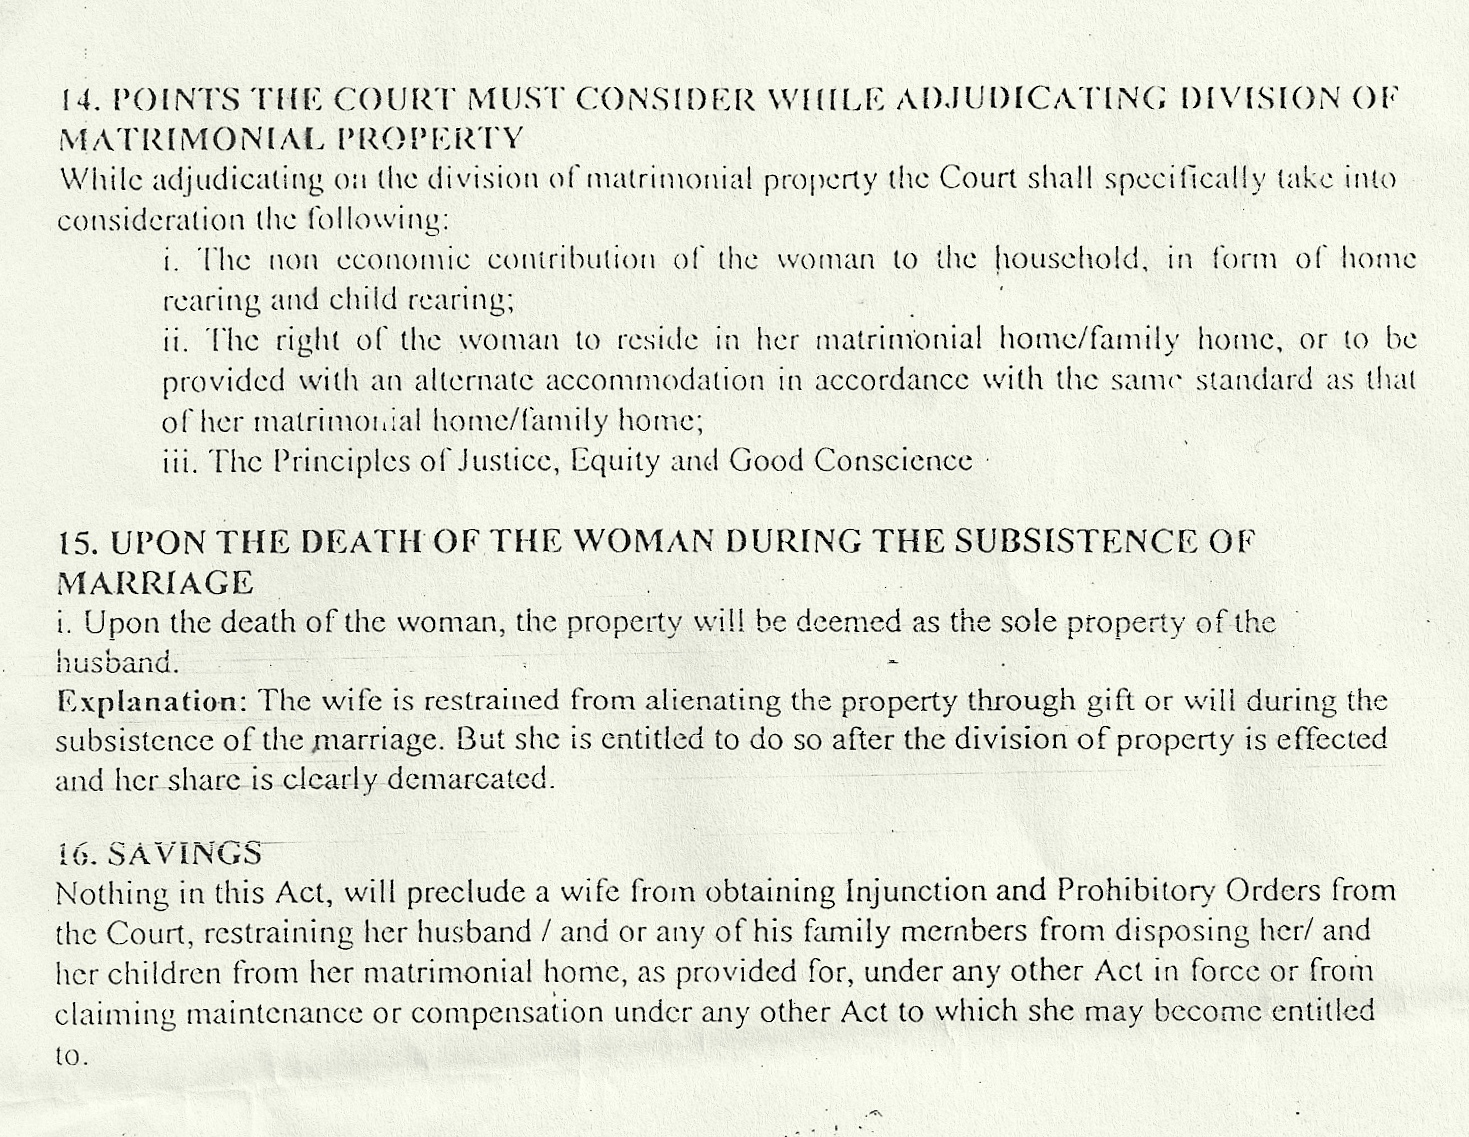 matrimonial property bill 2012 The matrimonial property bill, 2012 a bill for an act of parliament to provide for the rights and responsibilities of spouses in relation to matrimonial property and for connected purposes enacted by the parliament of kenya as follows— part i – preliminary short title 1 this act may be cited as the matrimonial property act, 2012.